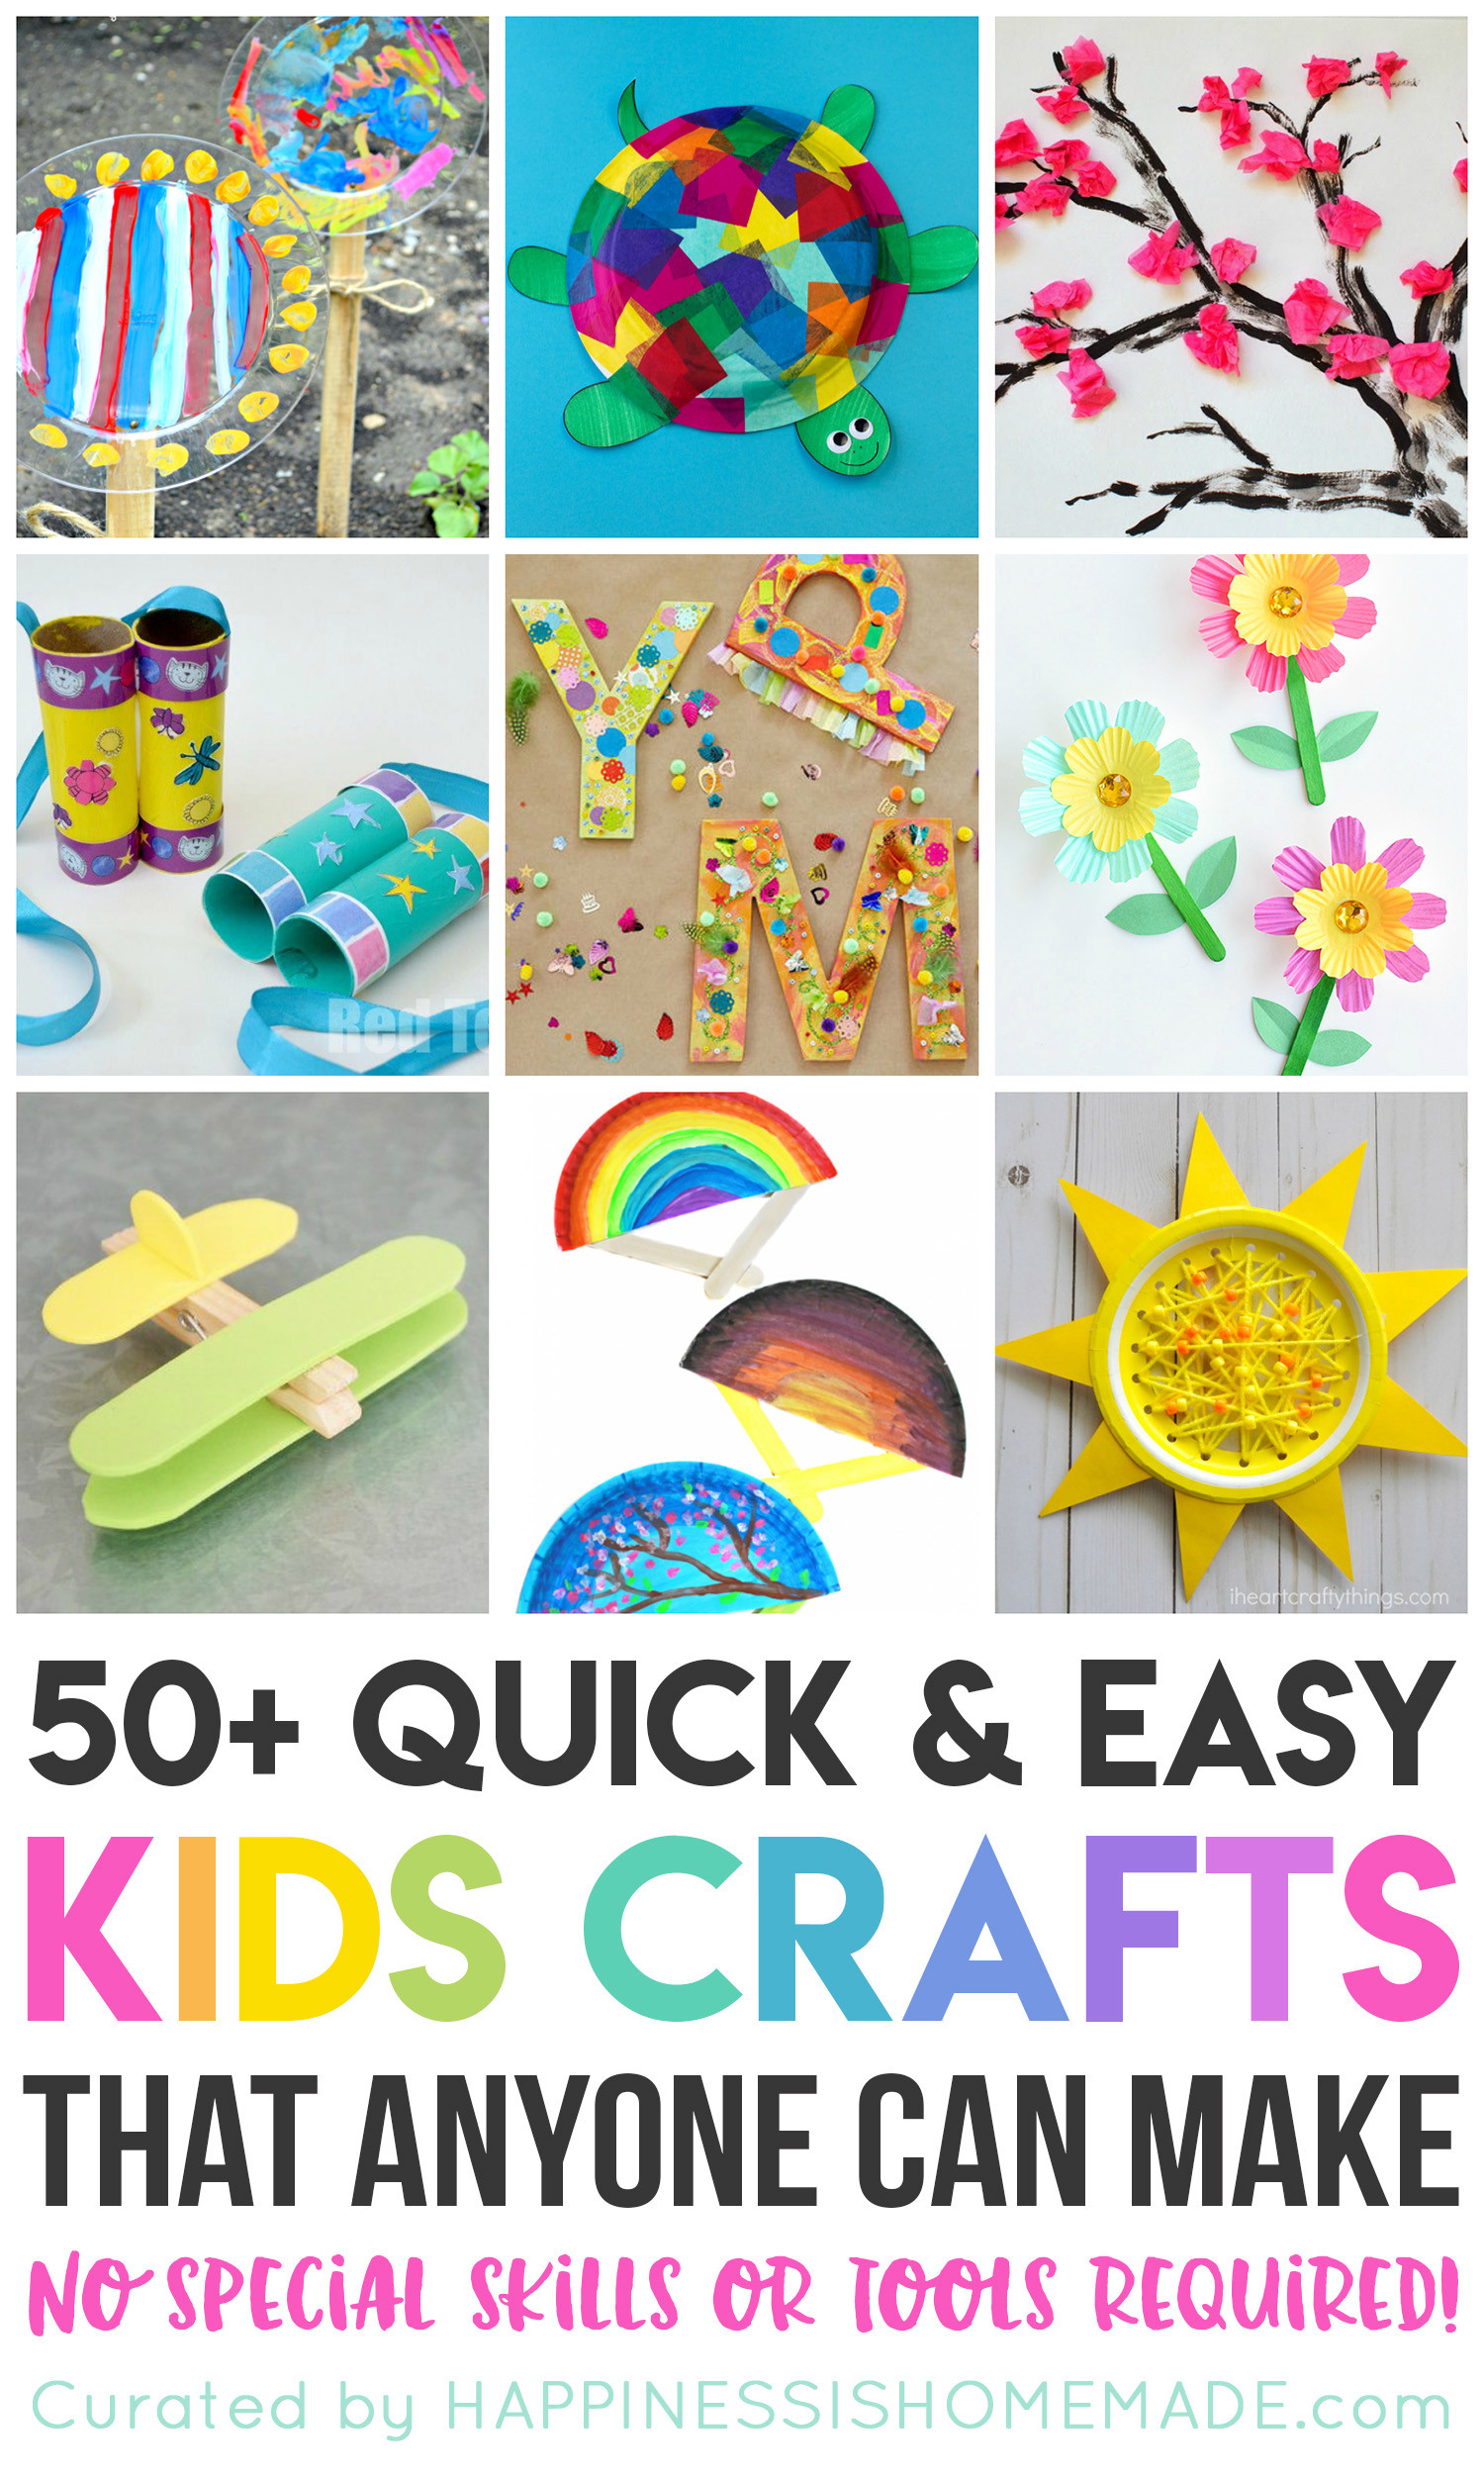 Best ideas about Easy Craft Ideas For Kids . Save or Pin Quick & Easy Halloween Crafts for Kids Happiness is Homemade Now.